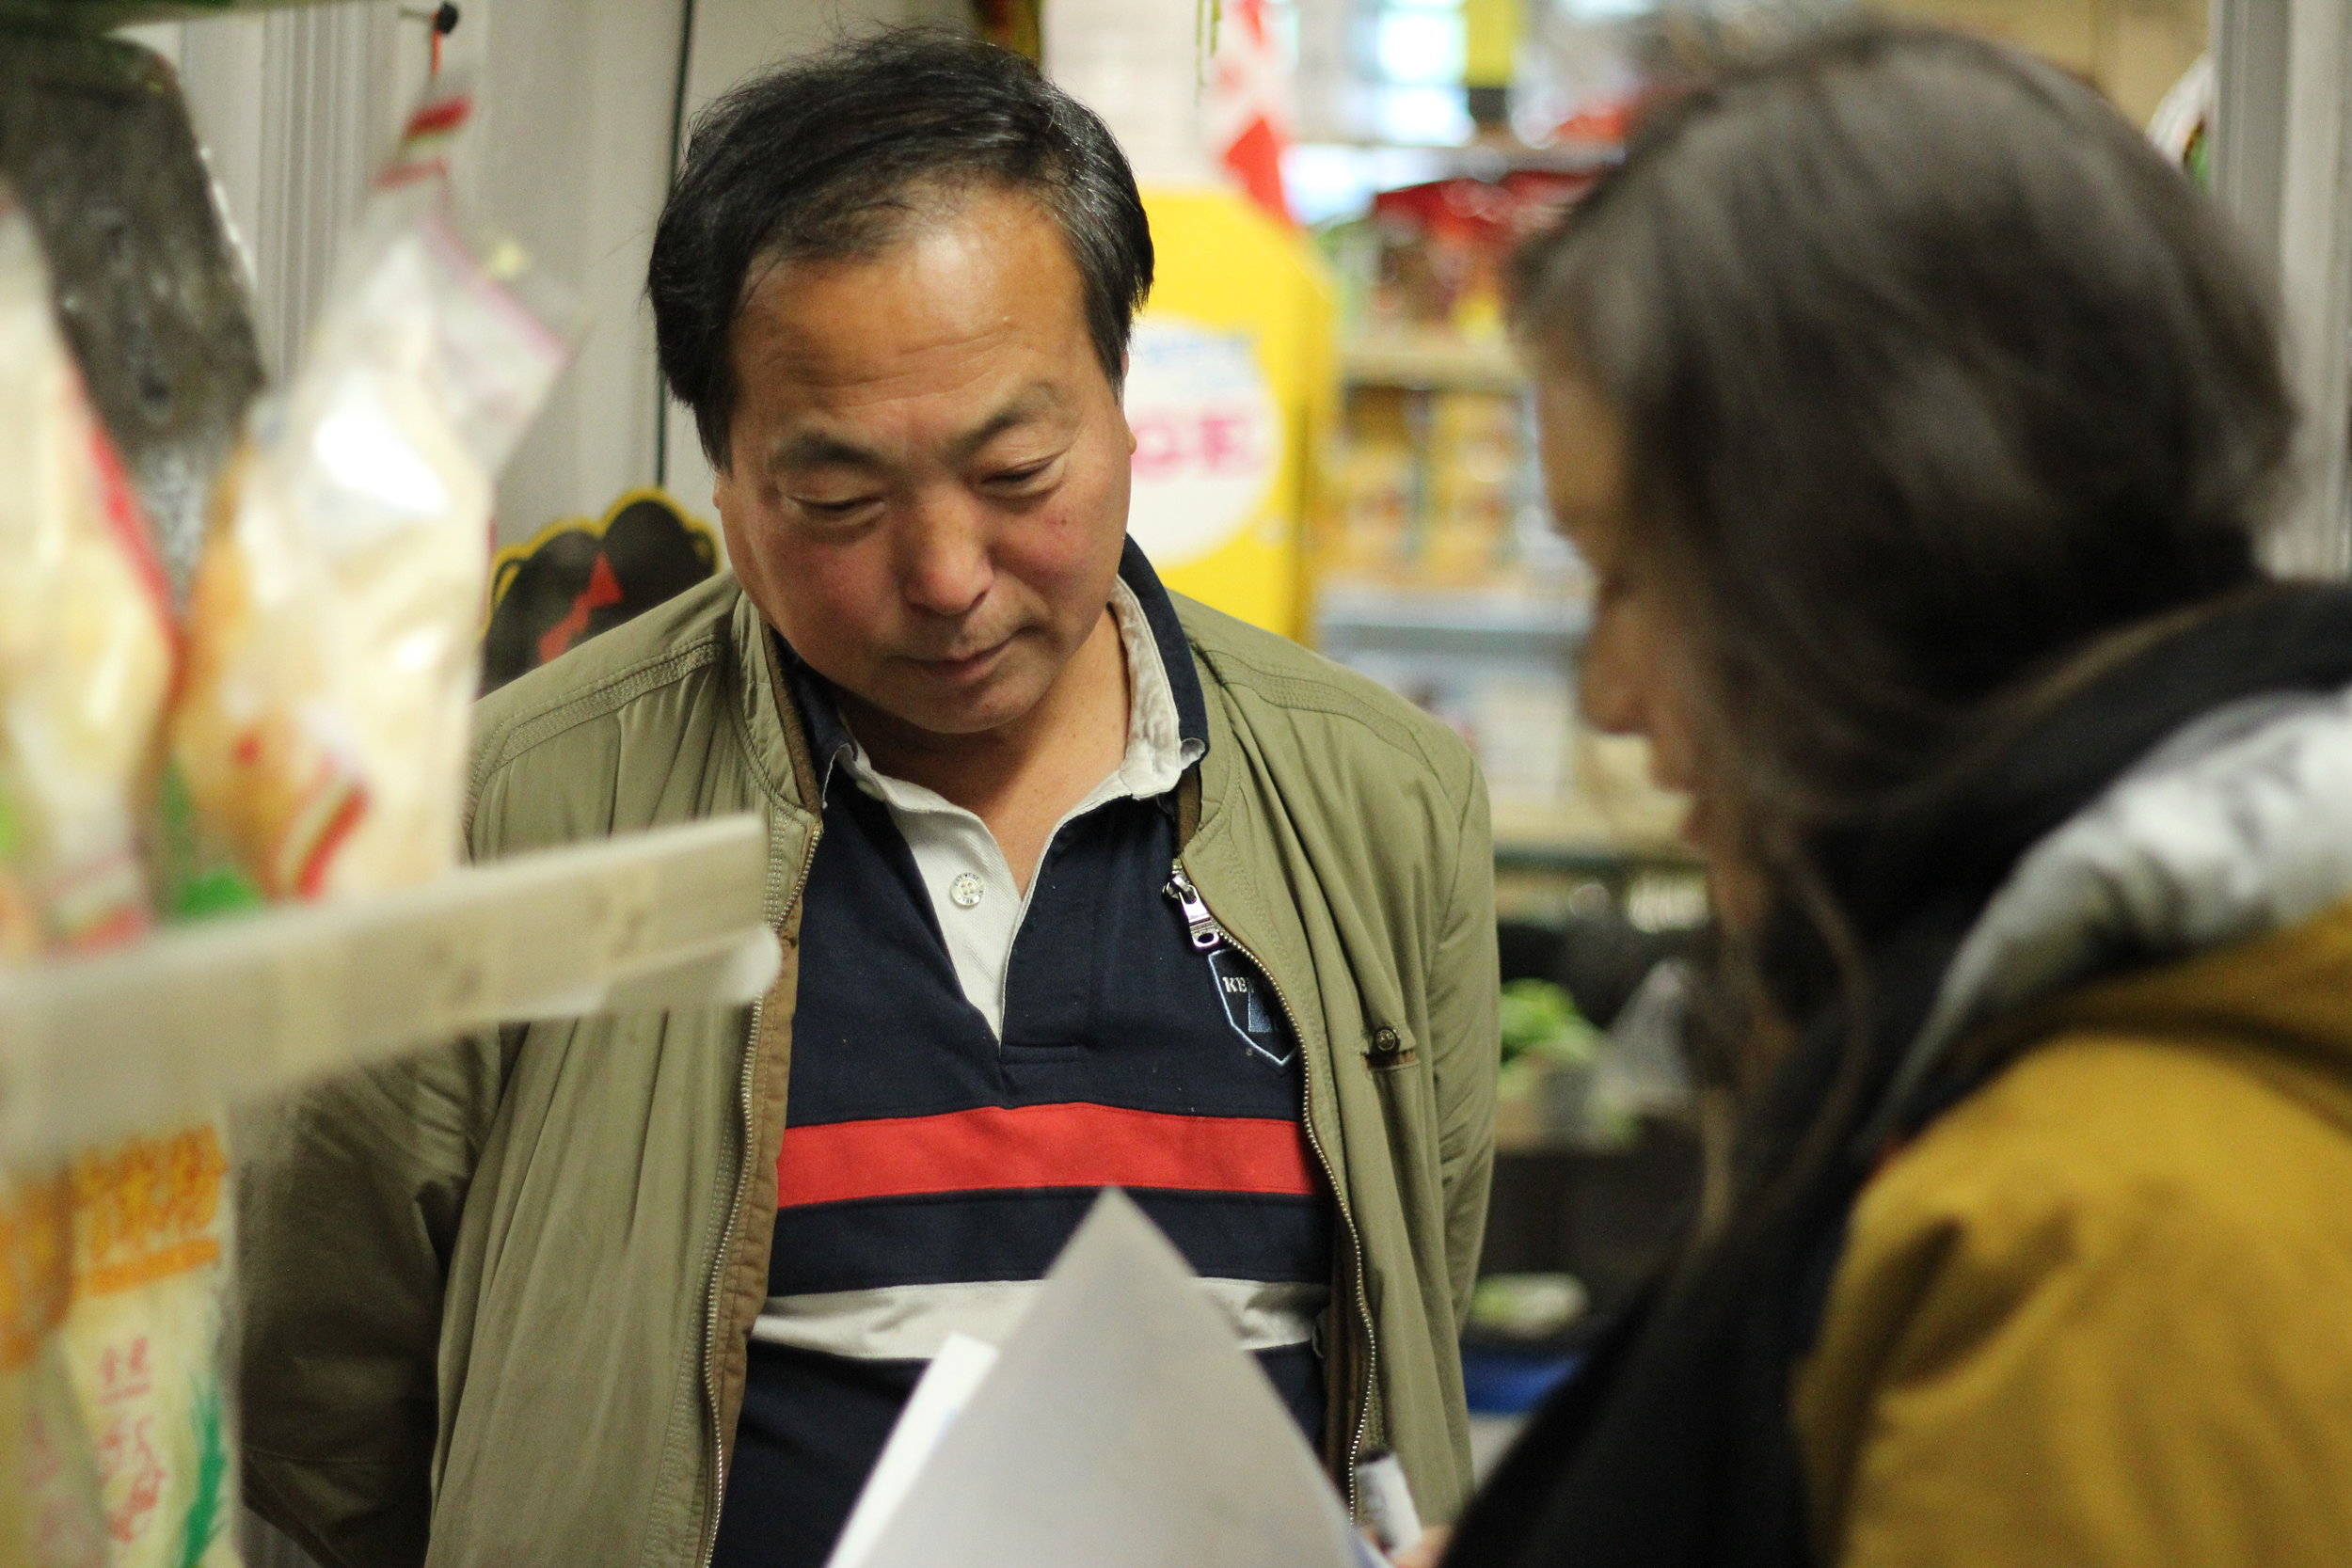 Ruping is the owner of Today Købmand, a Chinese supermarket in Vesterbro, and a partner for District Spice.